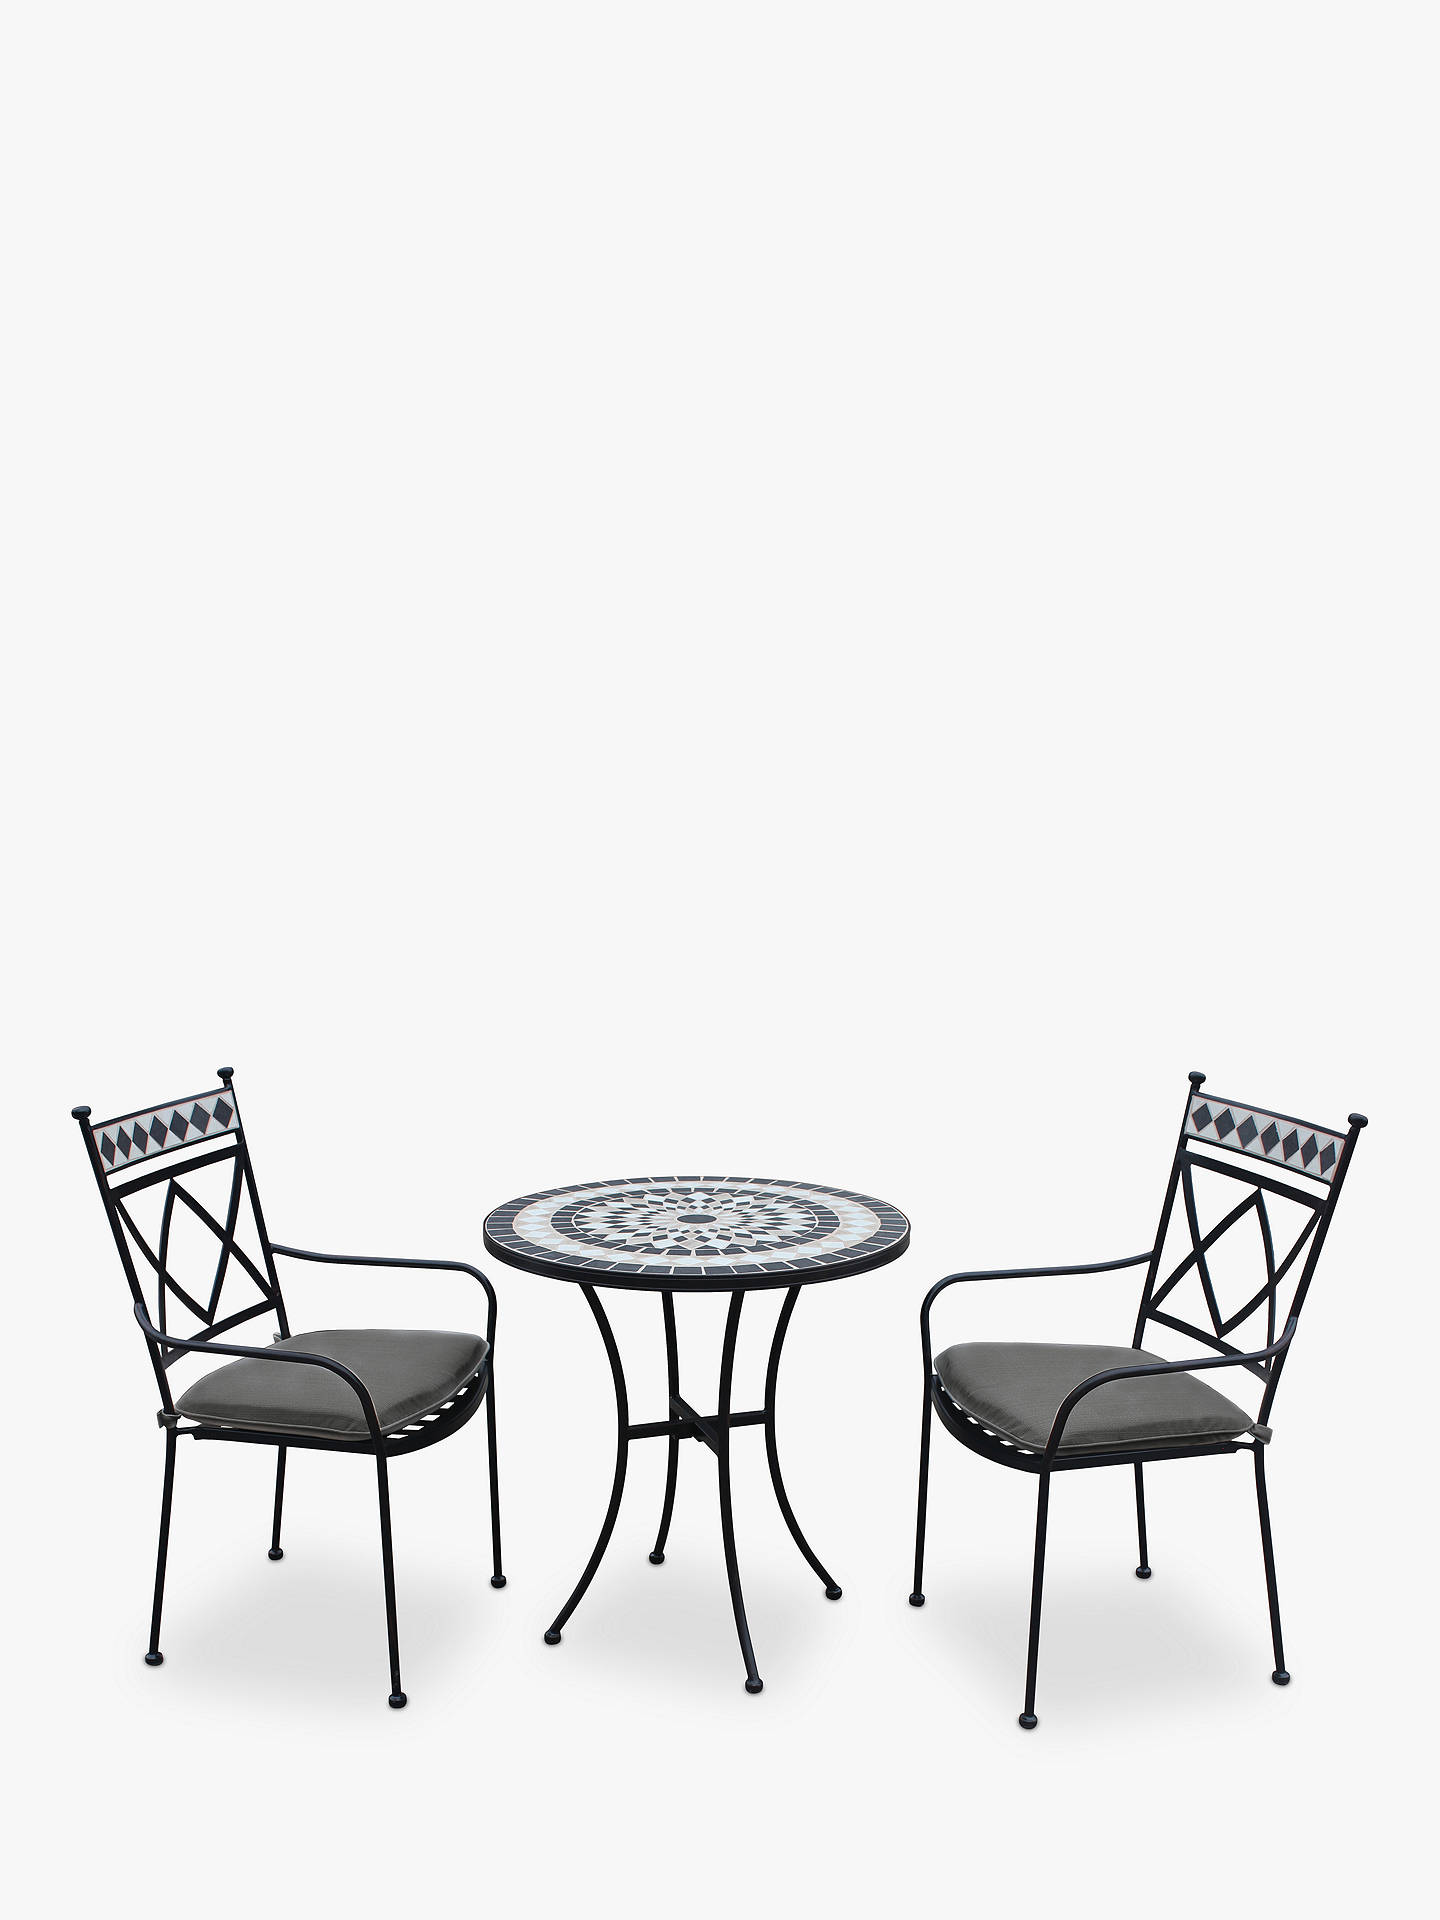 lg outdoor casablanca 2 seater garden bistro table and